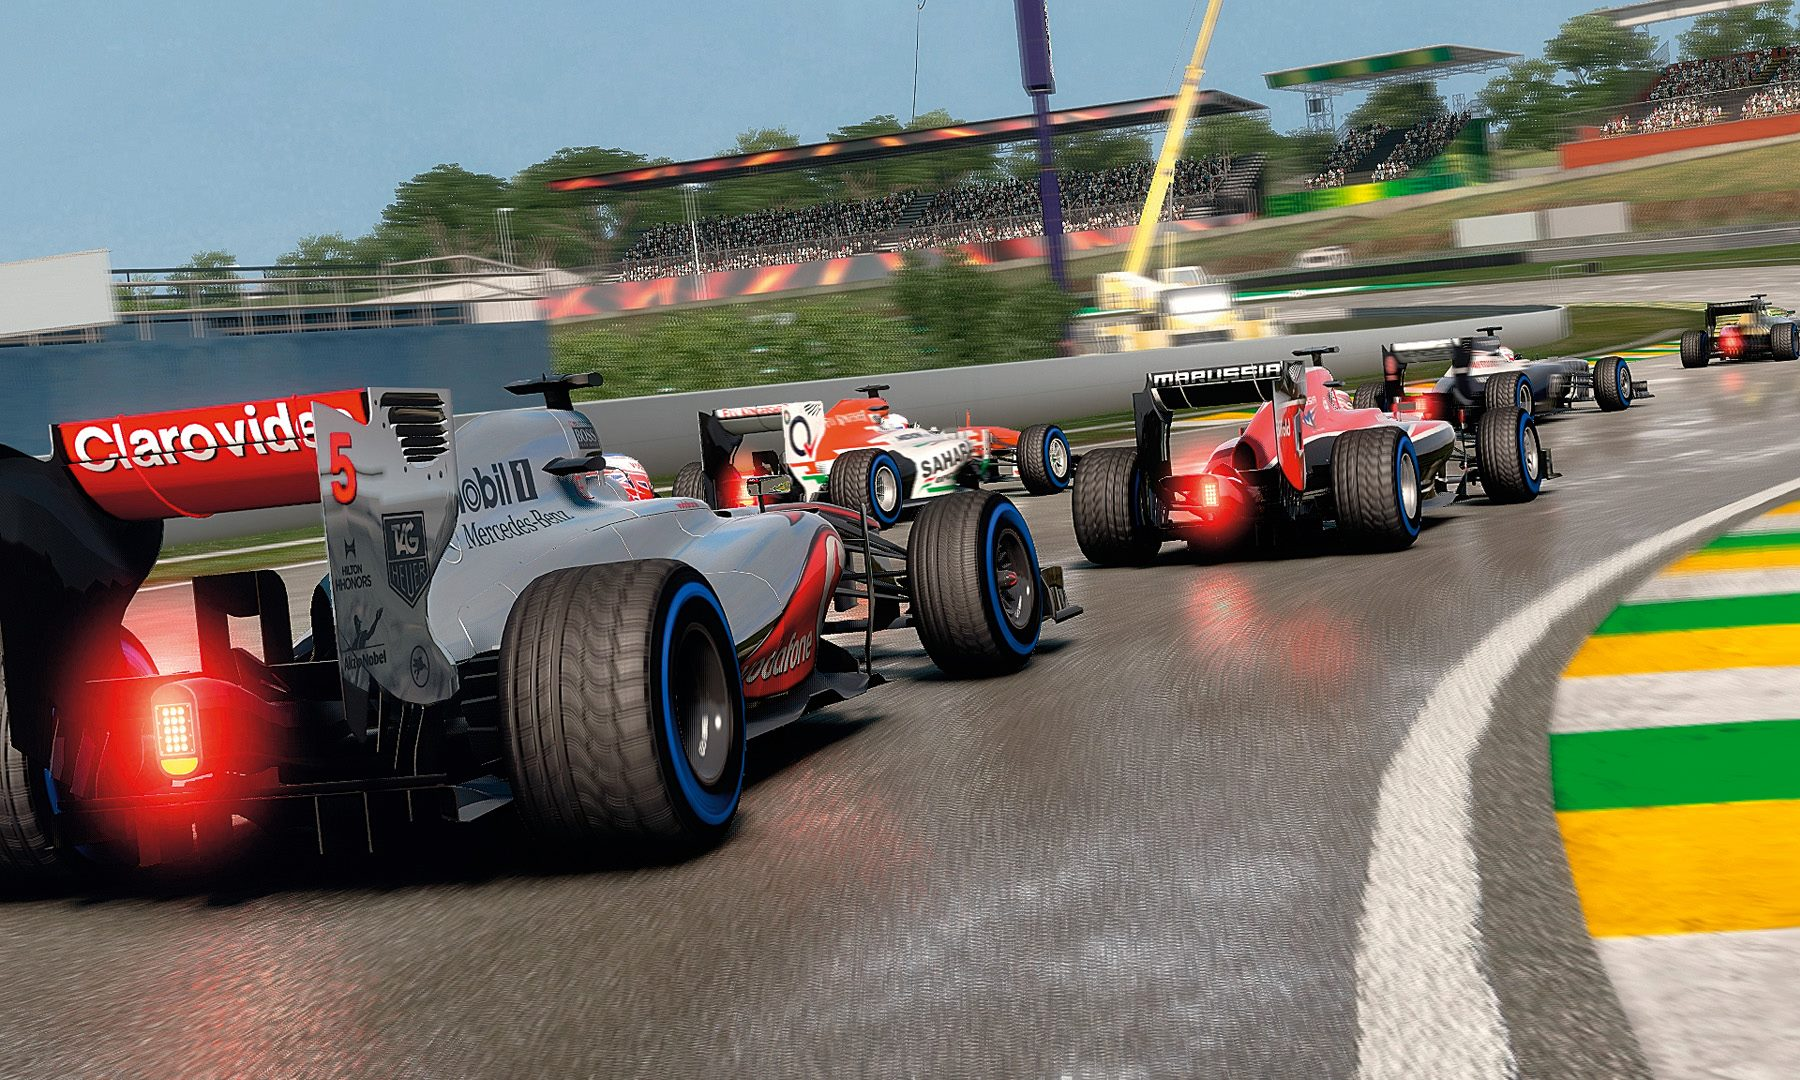 http://games.reveur.de/images/screenshots/f12013-1377174646_5216047639656.jpg